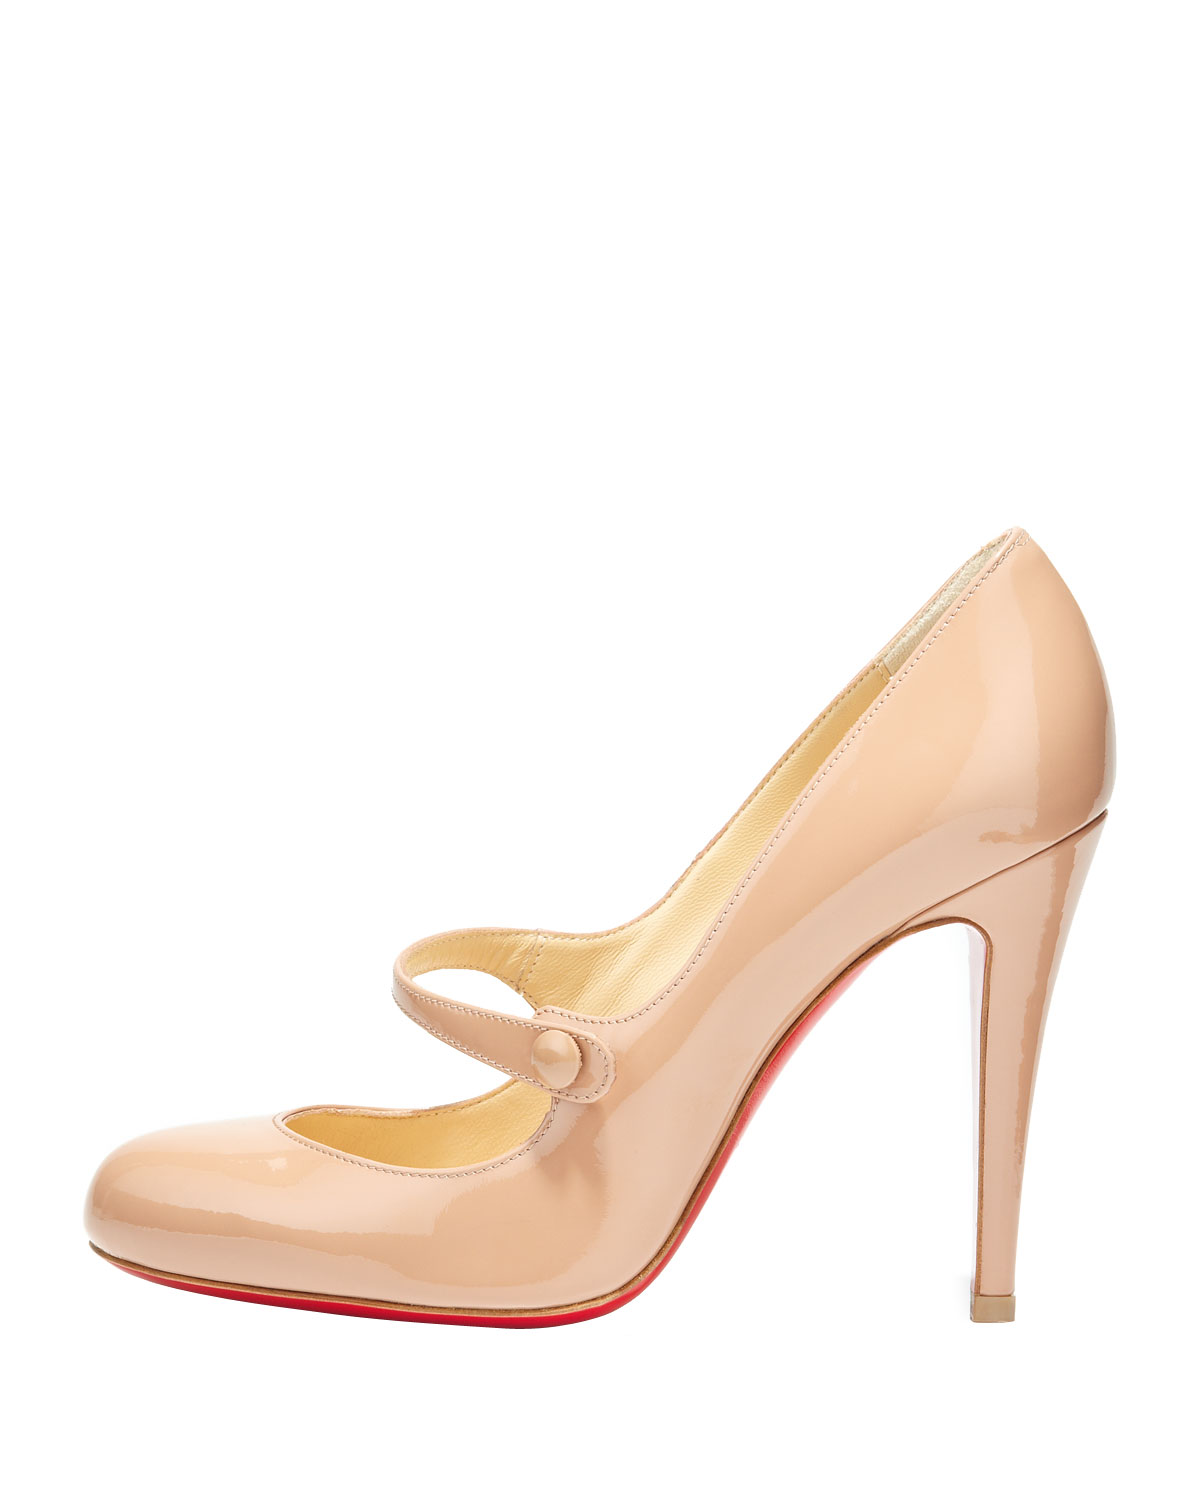 christian louboutin platform Mary Jane pumps Nude leather stiletto ...